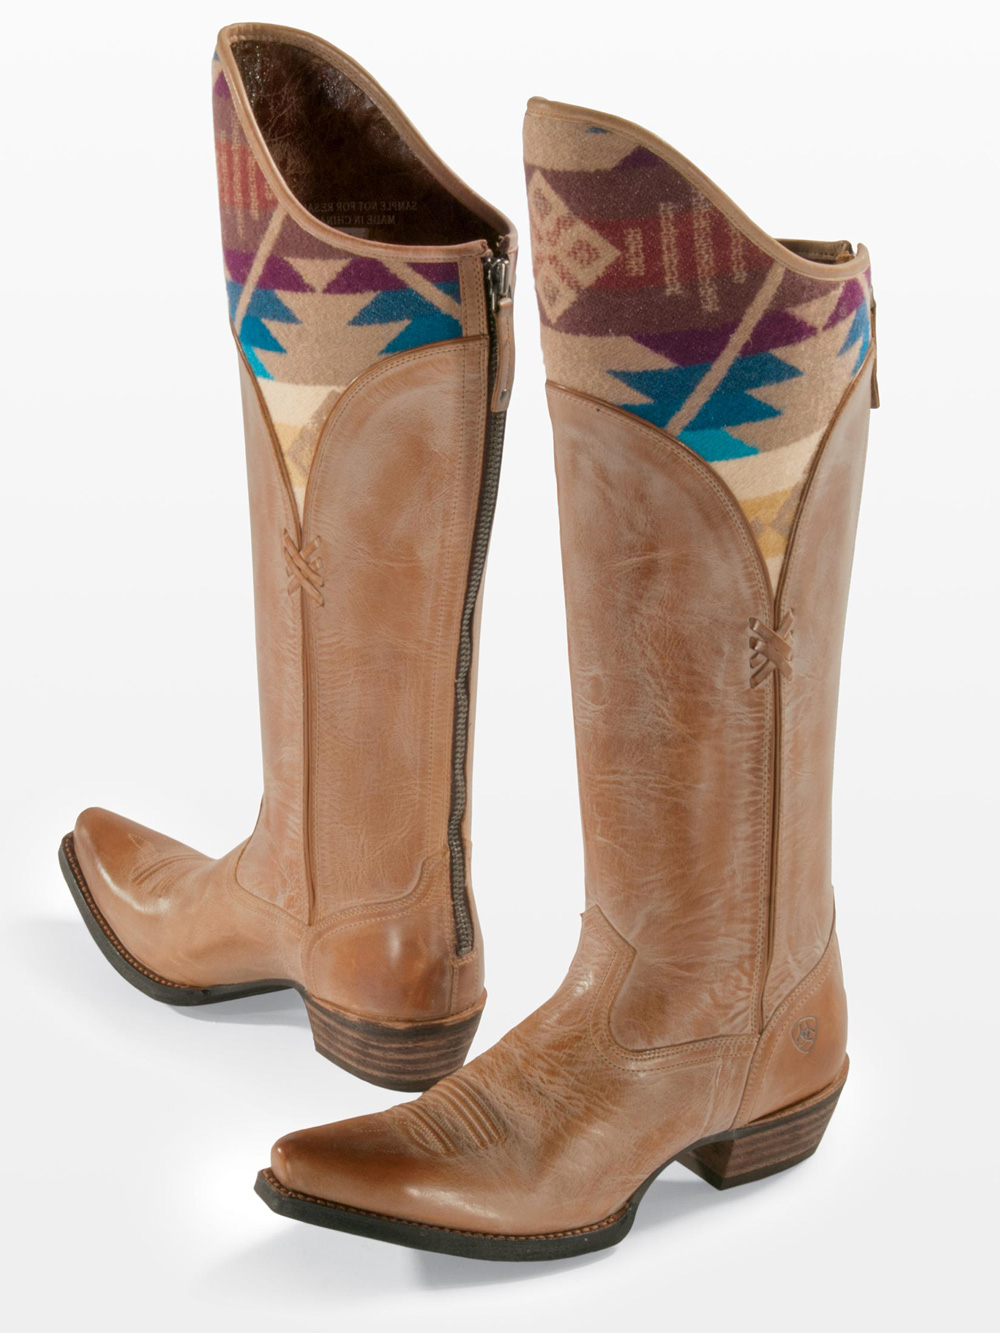 New Pendleton x Ariat Collaboration Boots for Fall | Pendleton